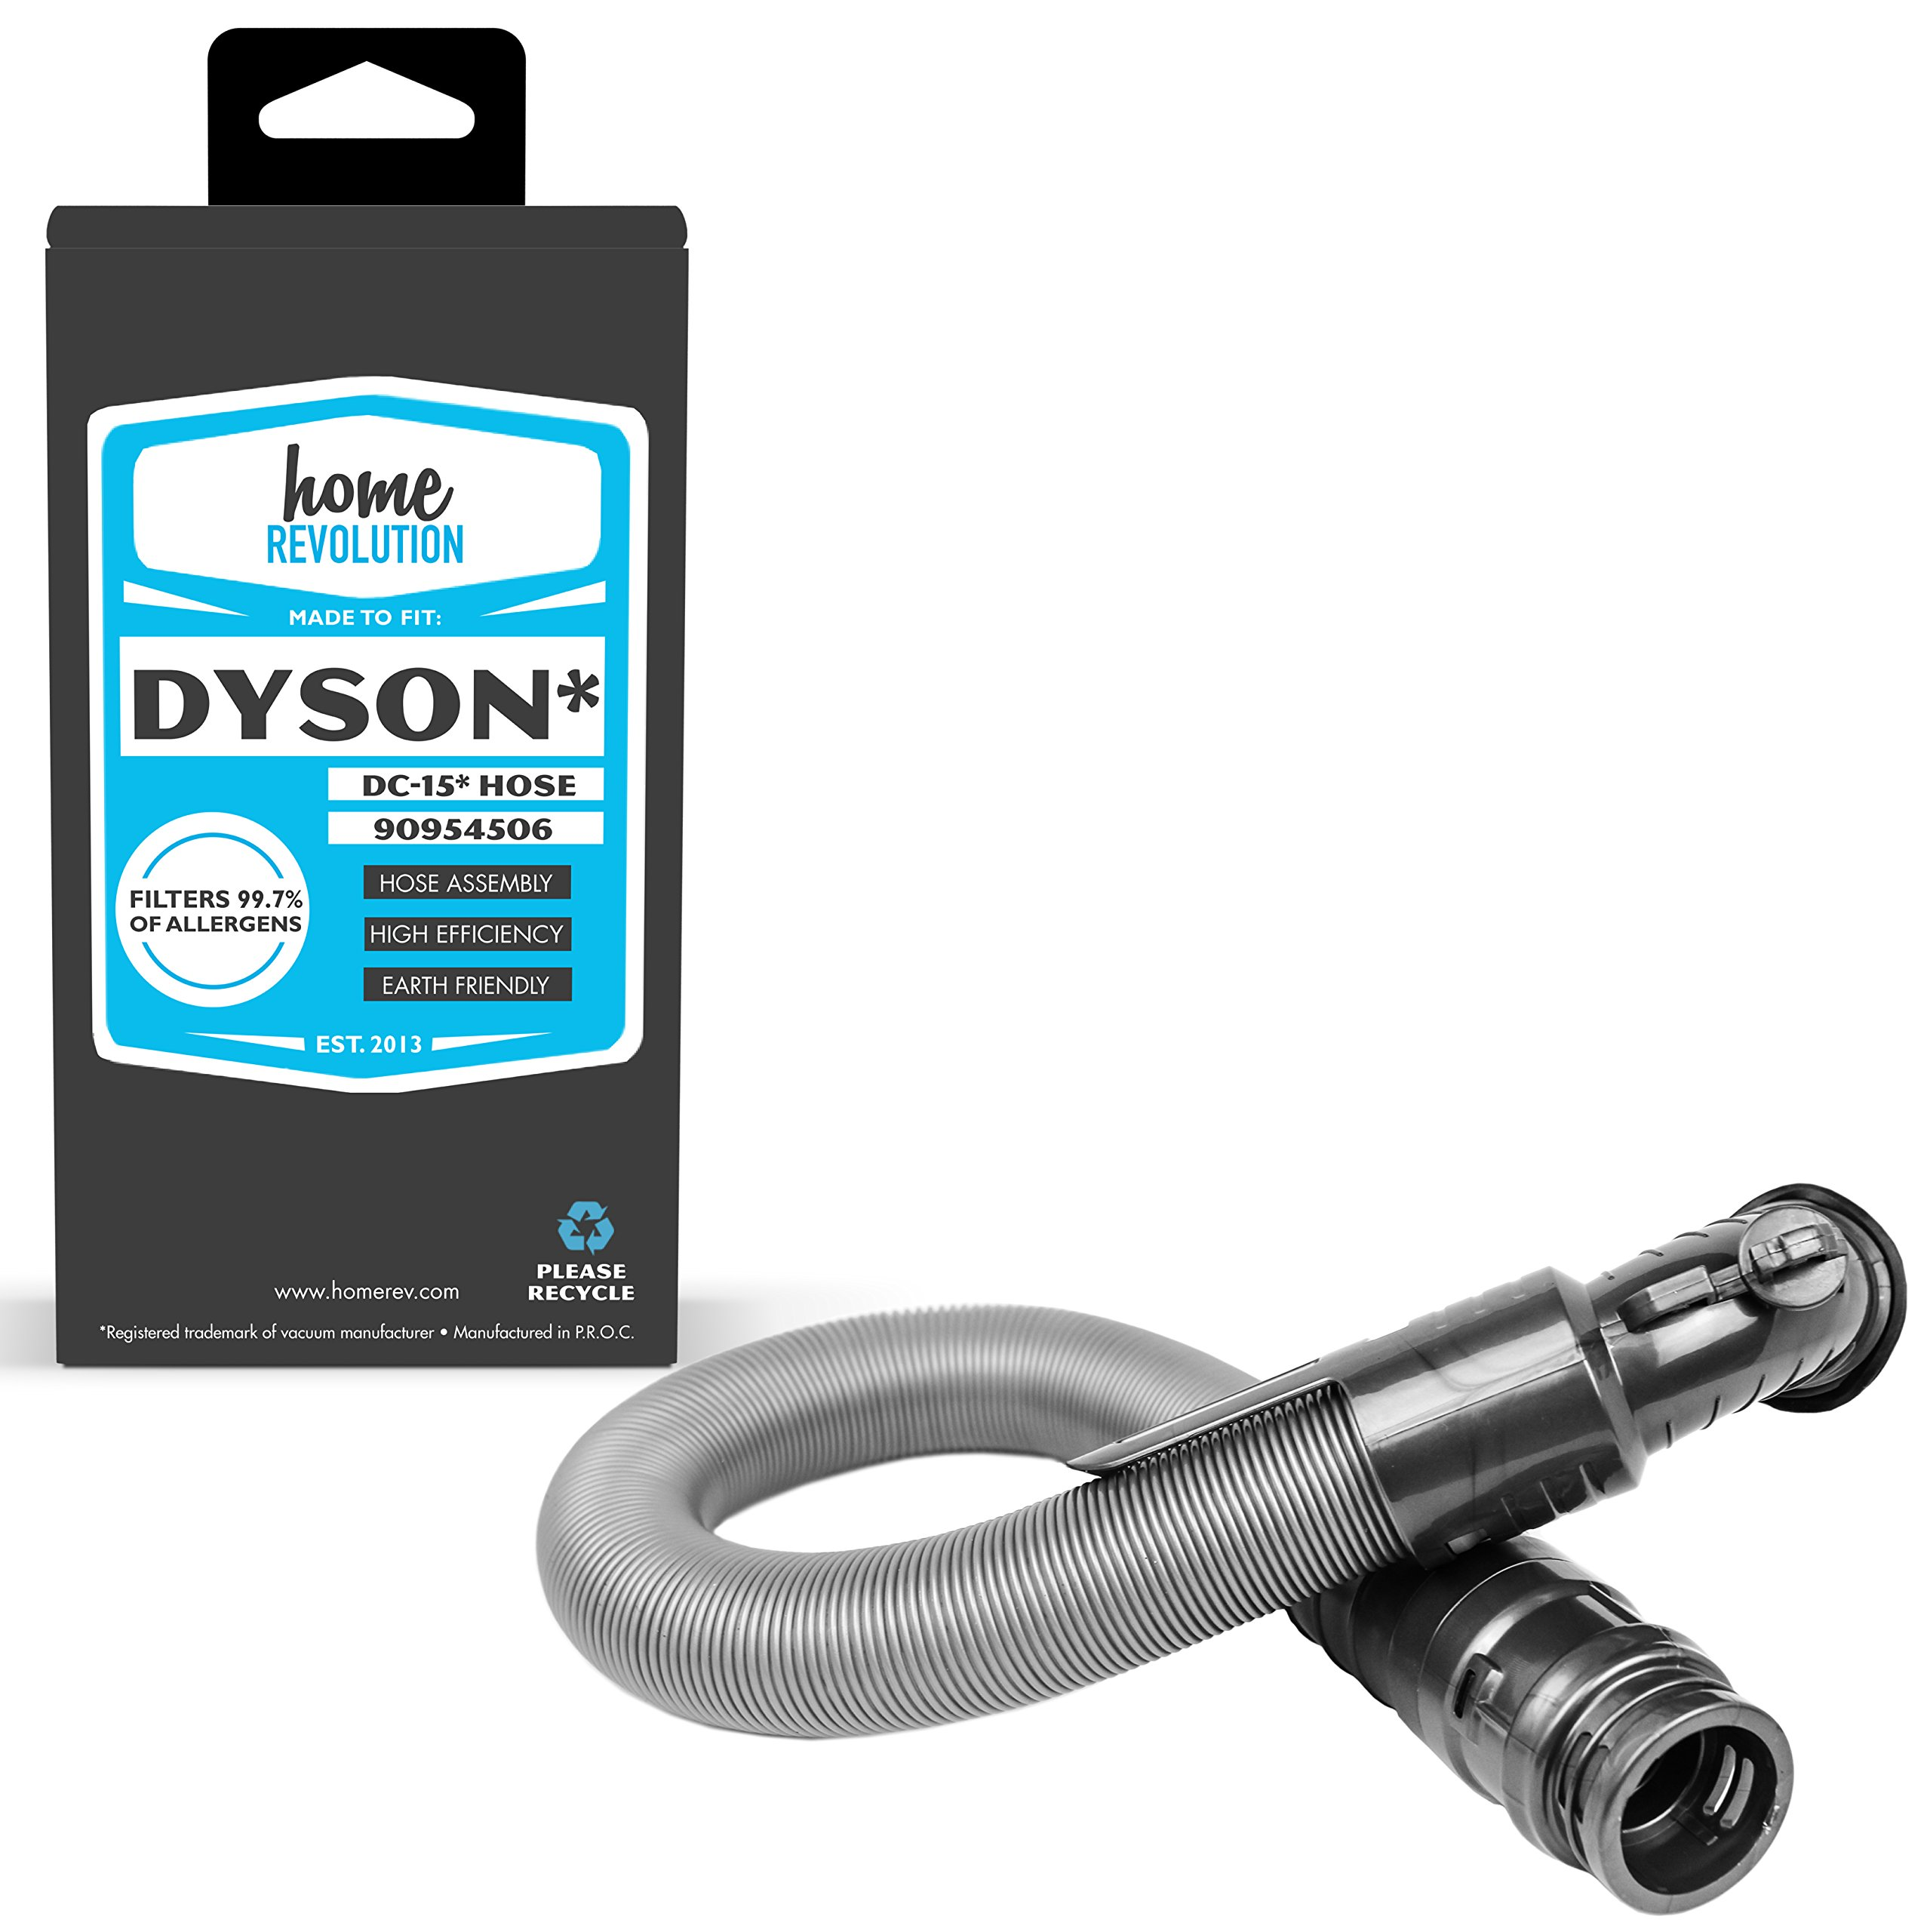 Home Revolution Replacement Vacuum Hose, Fits Dyson DC15 All Floors, Animal, Full Kit, HSN Exclusive, The Ball and Total Clean Vacuums and Part 909545-06